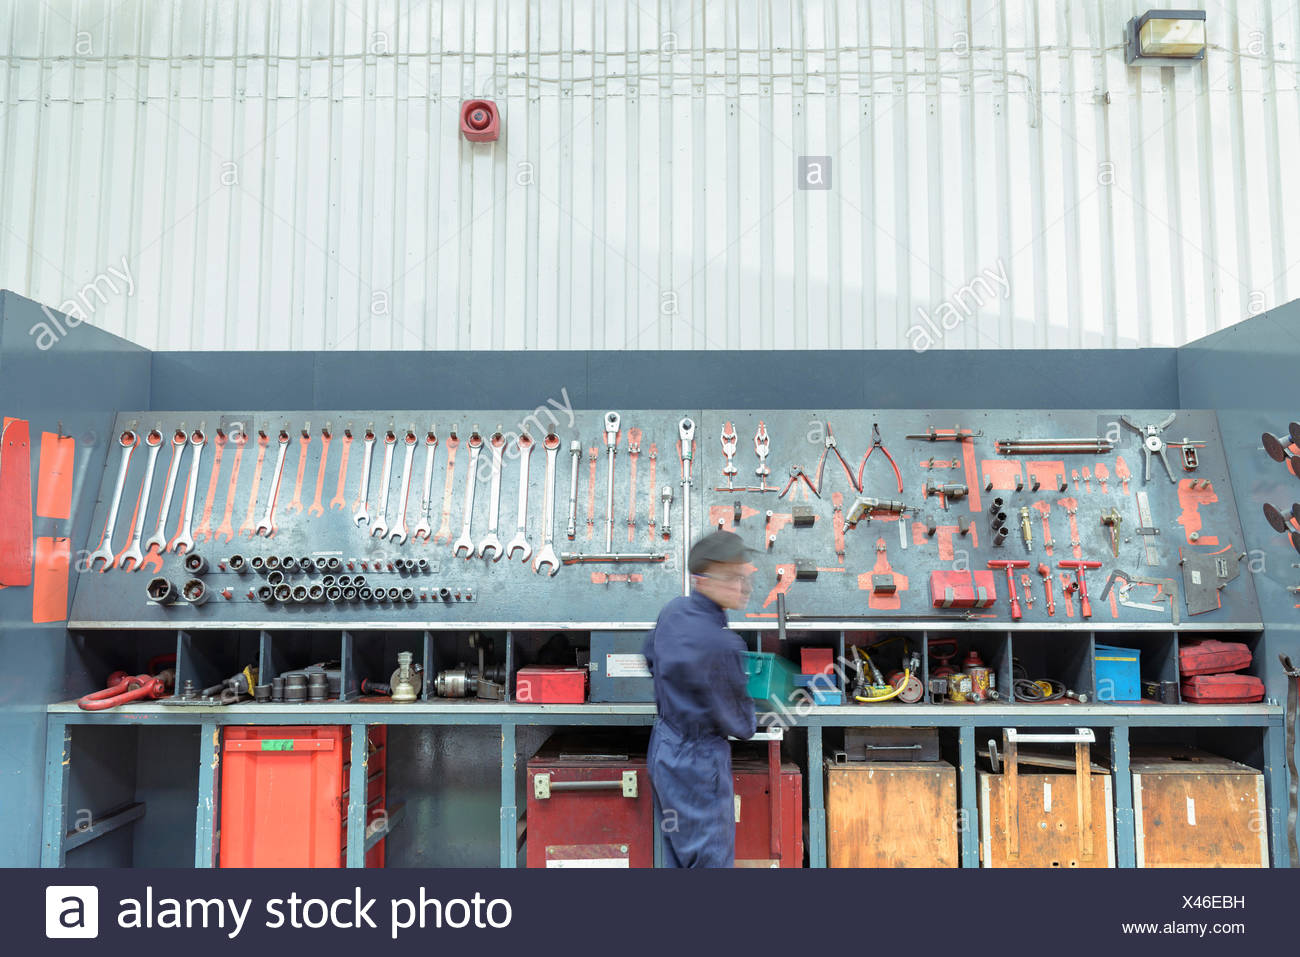 Locomotive engineer picking tools in train works - Stock Image